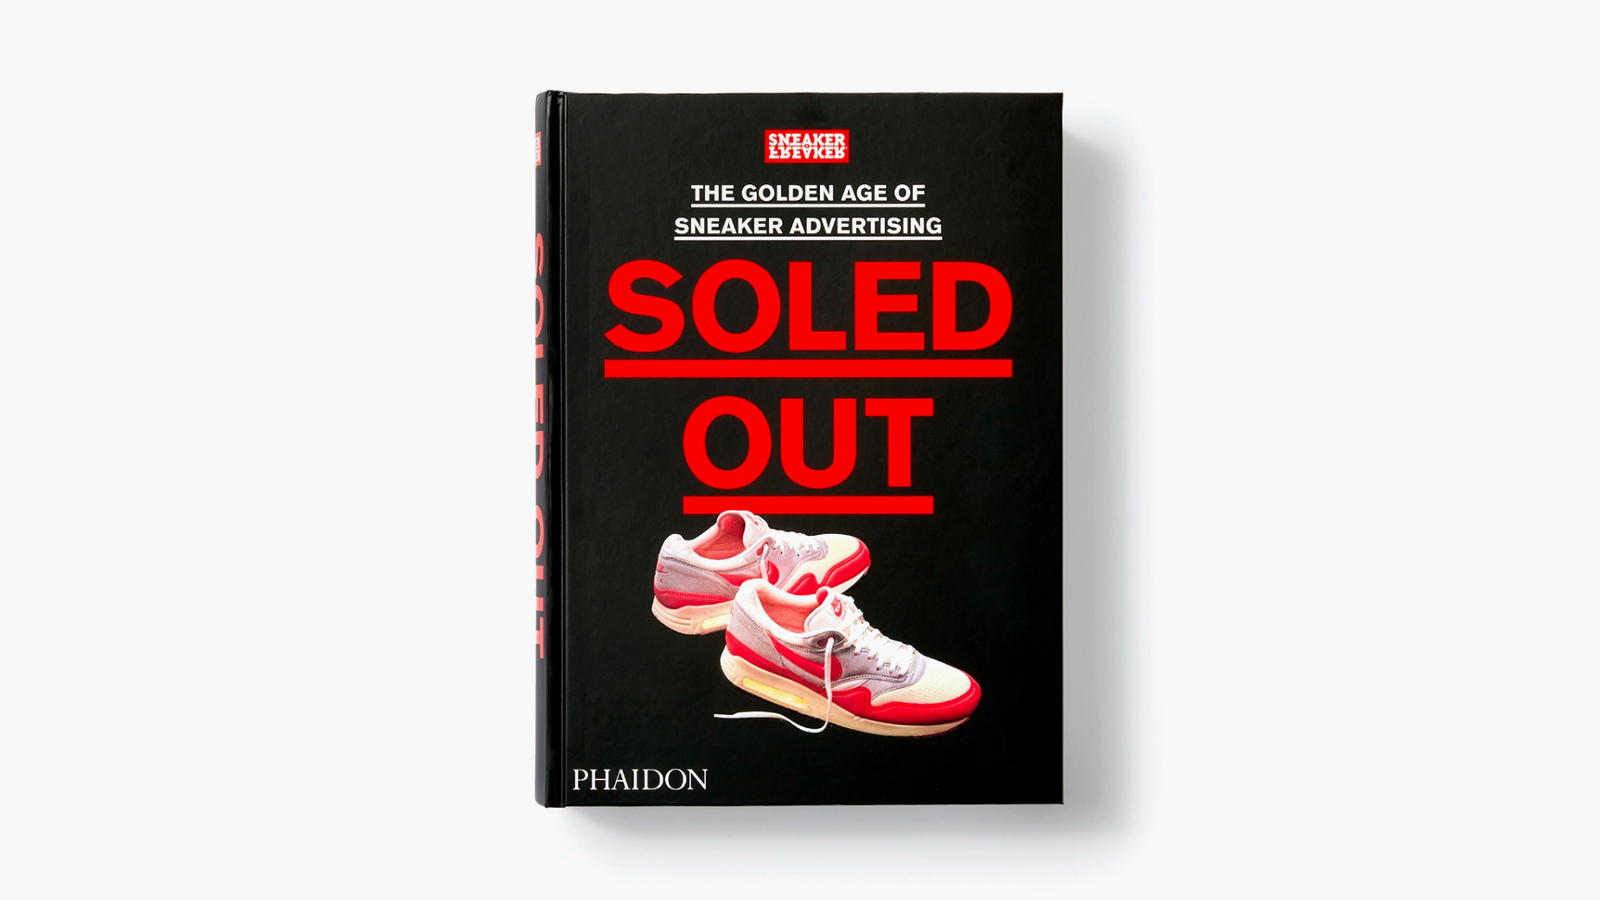 'Soled Out: The Golden Age of Sneaker' Advertising by Sneaker Freaker